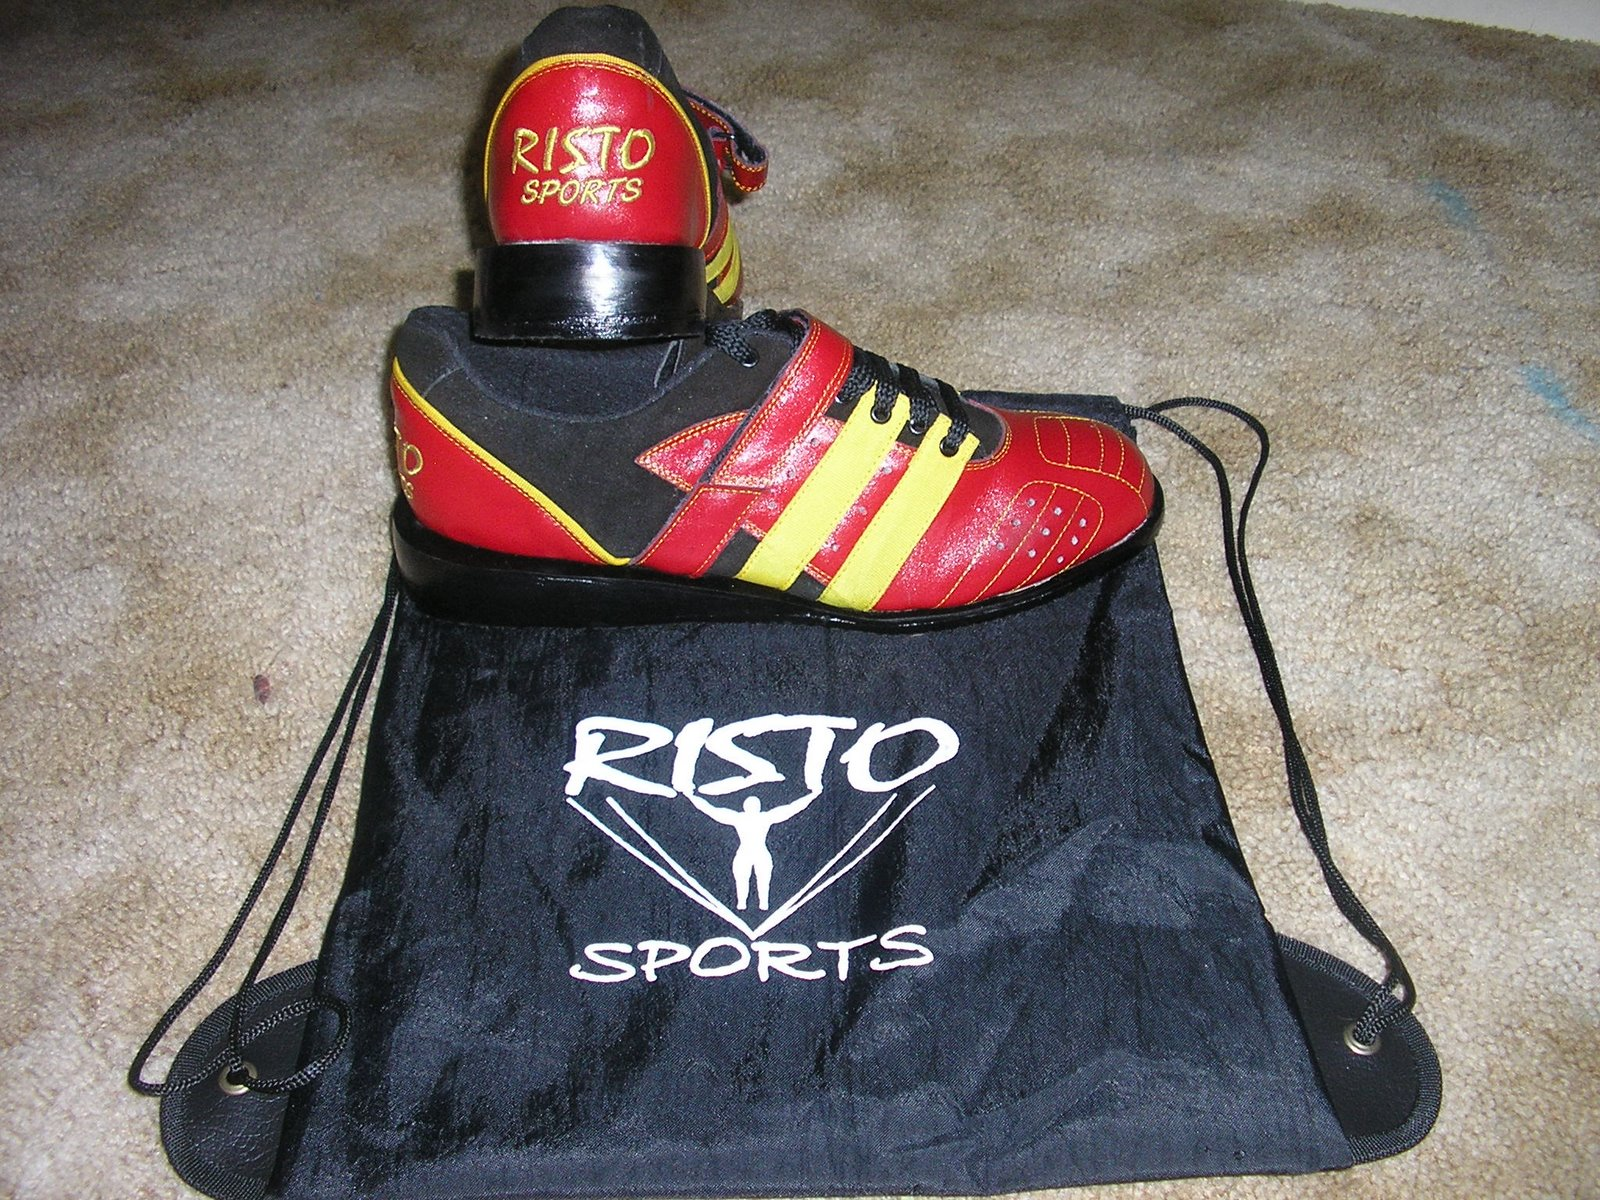 Old Stuff - early Risto Weight lifting Shoes